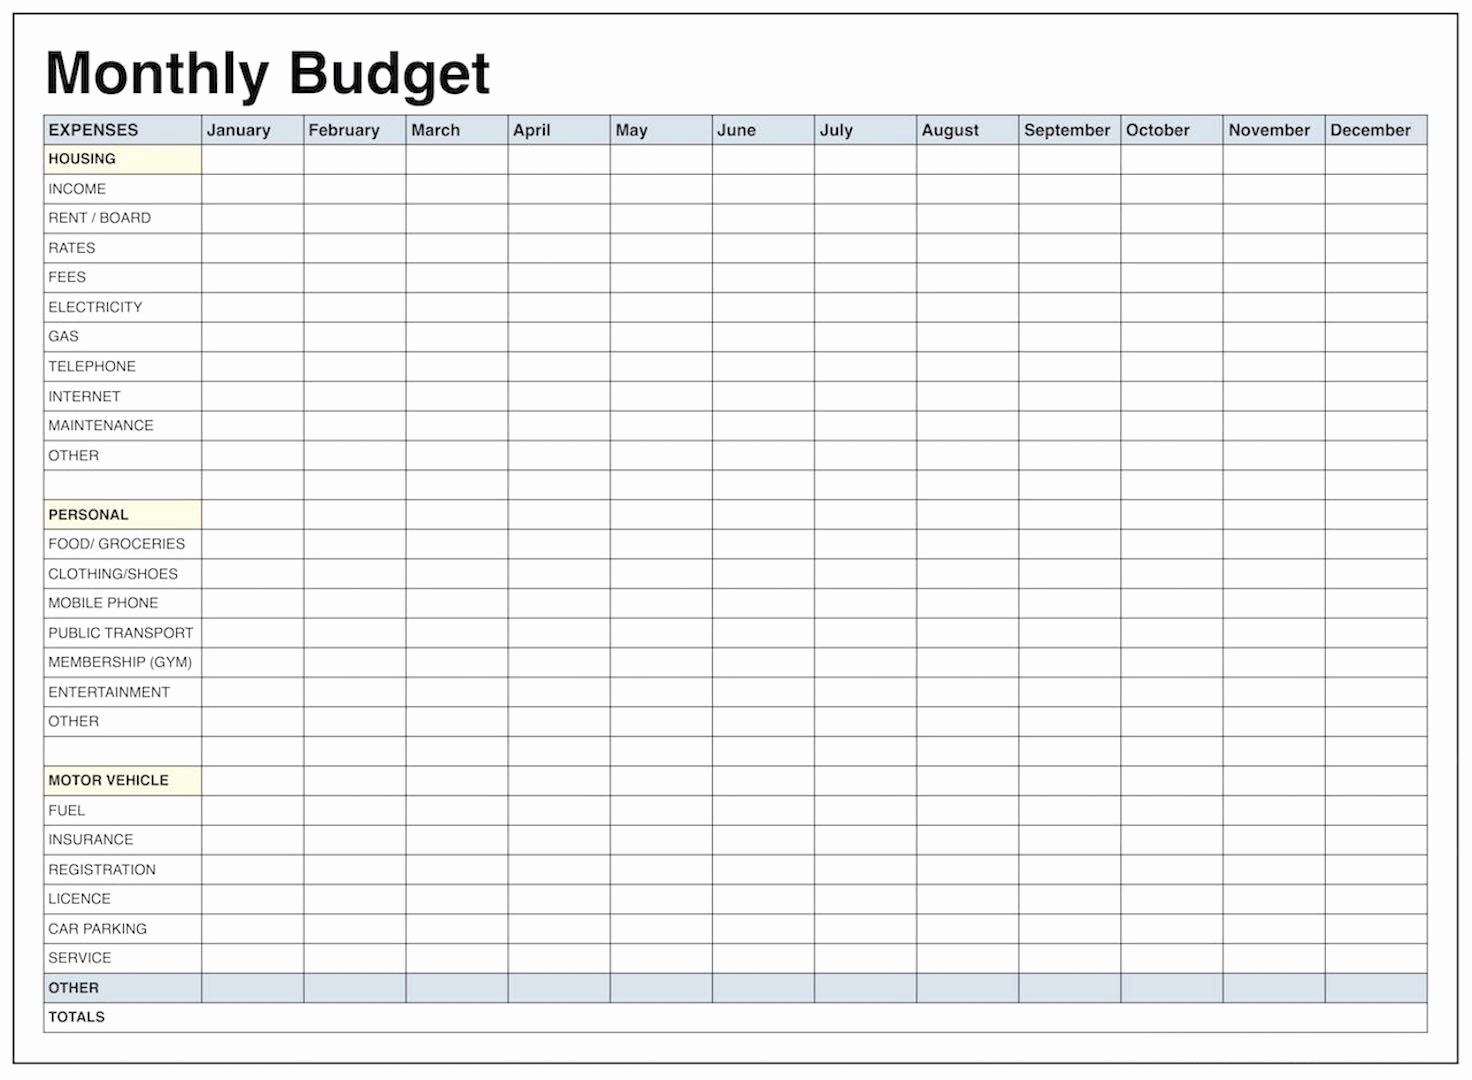 Monthly Budget Template Pdf Fresh Monthly Bud Planner Bud Calendar Bud Planner